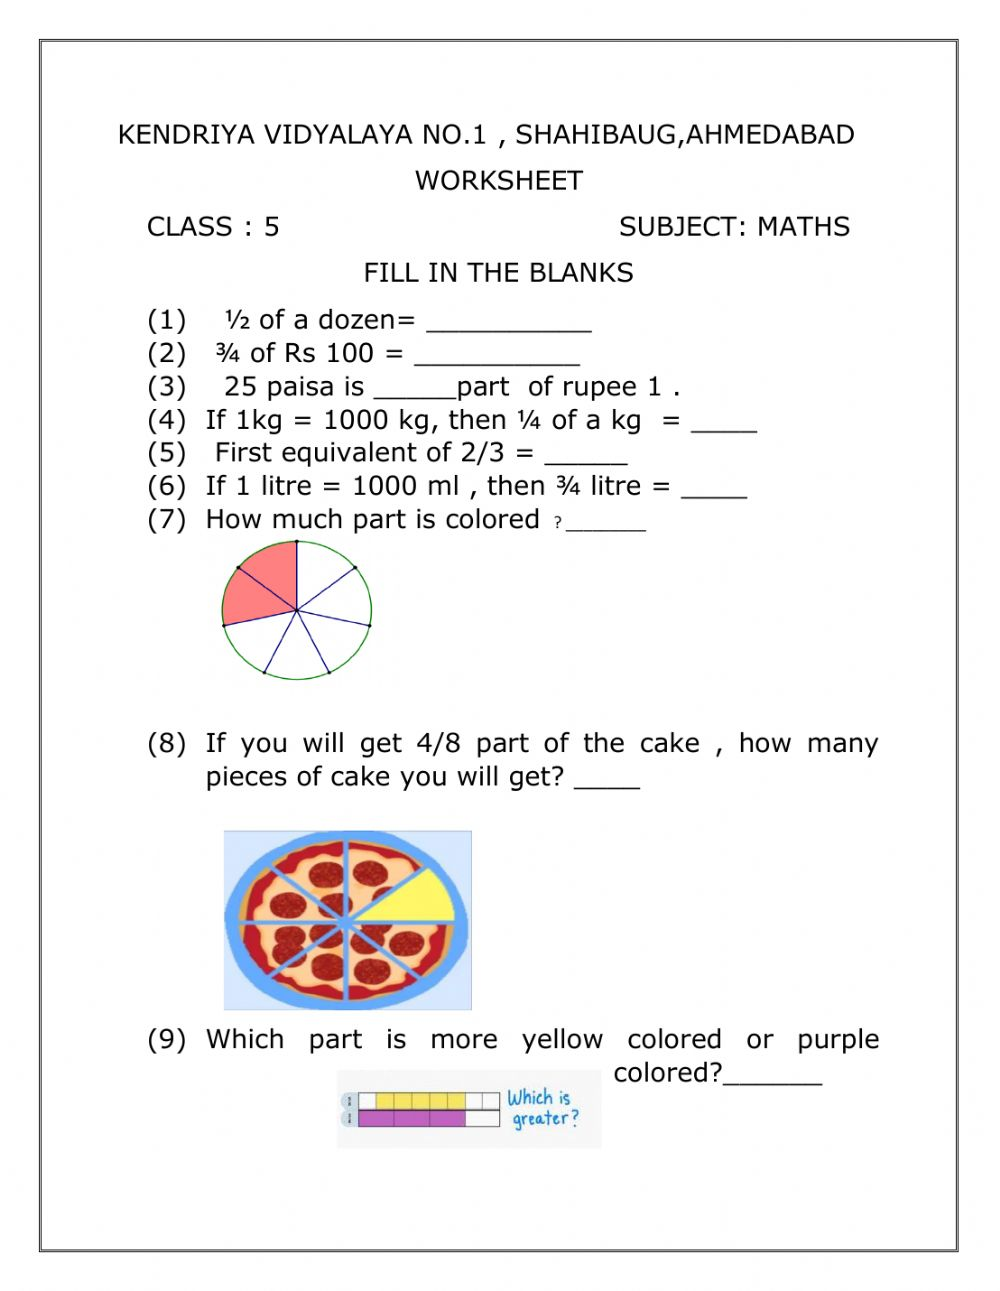 Fill In The Blanks Free Online Activity